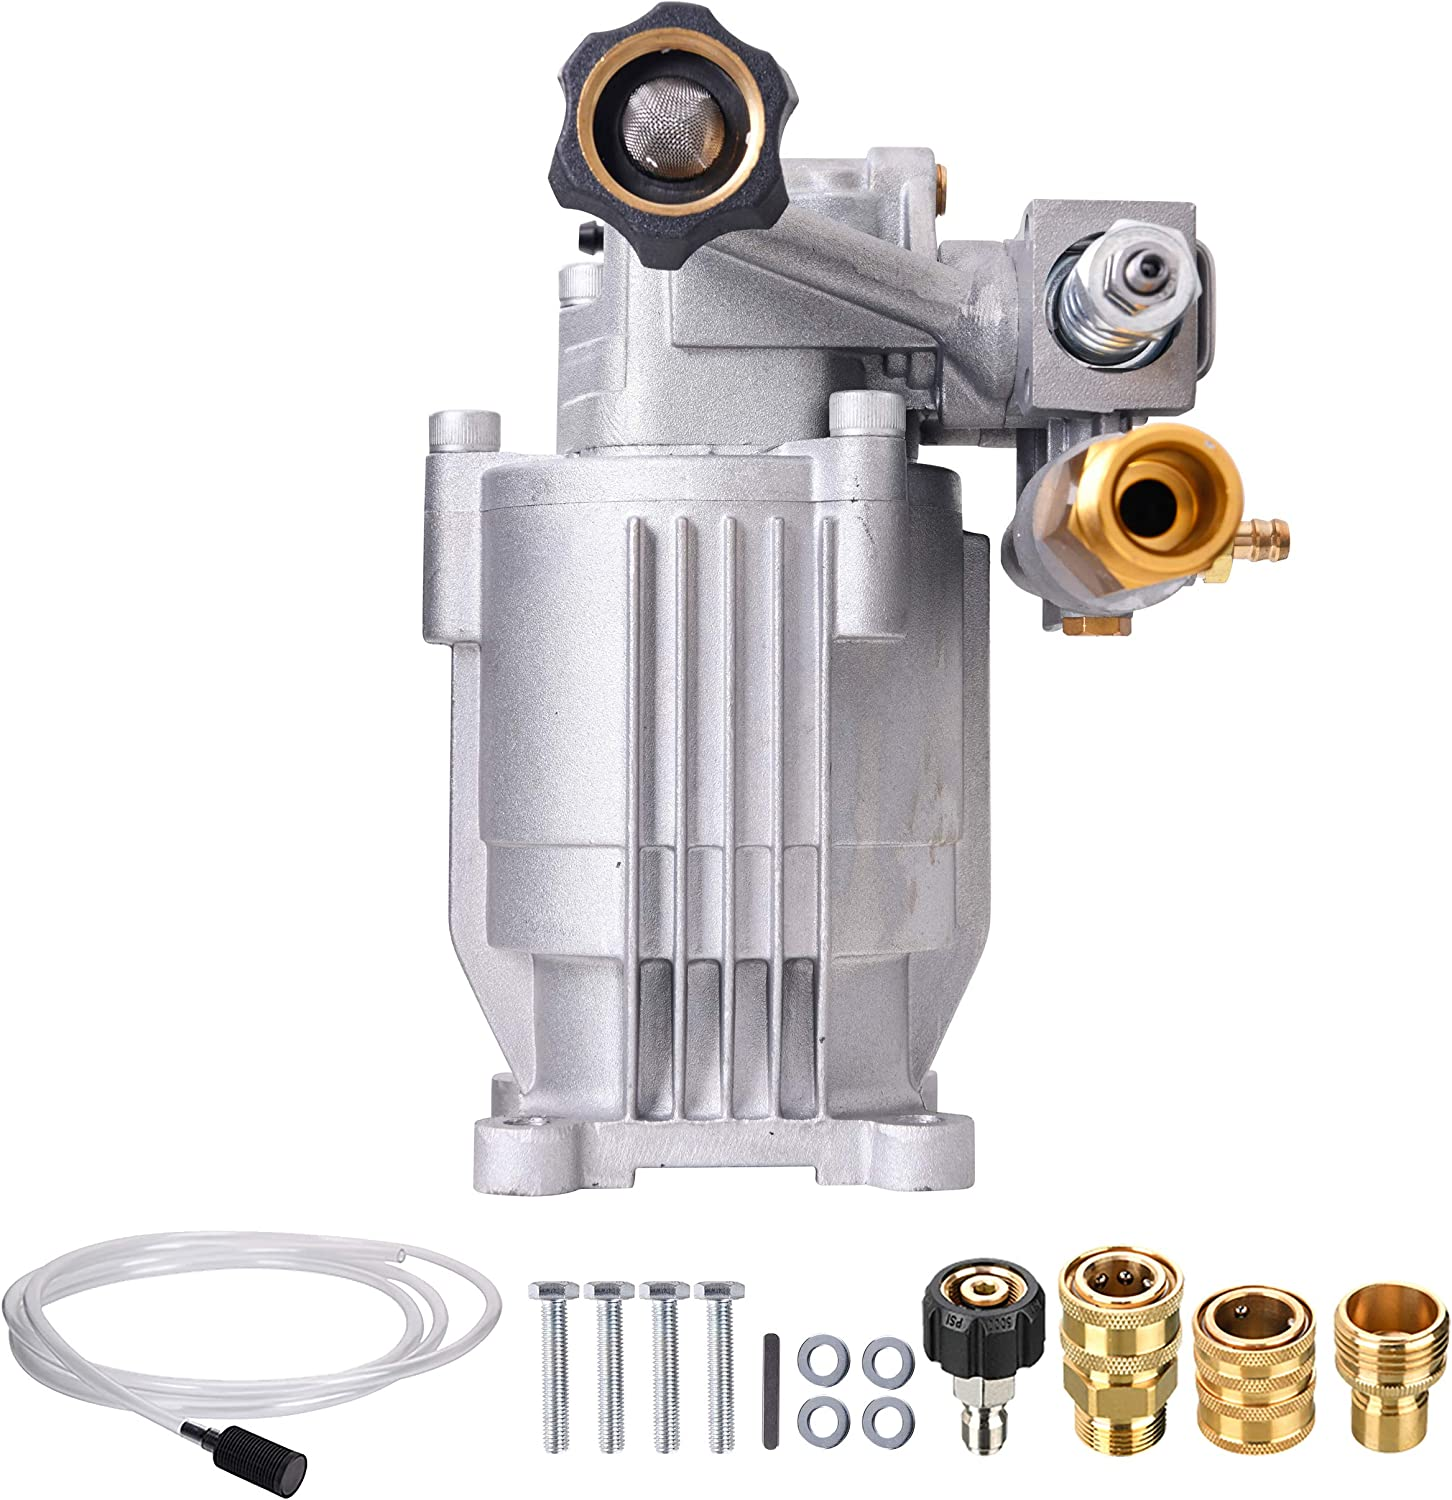 Tool Daily Pressure Washer Pump Replacement, Horizontal Pump for Cold Water Gas Power Washer, 2600-3000 PSI, 2.4 GPM